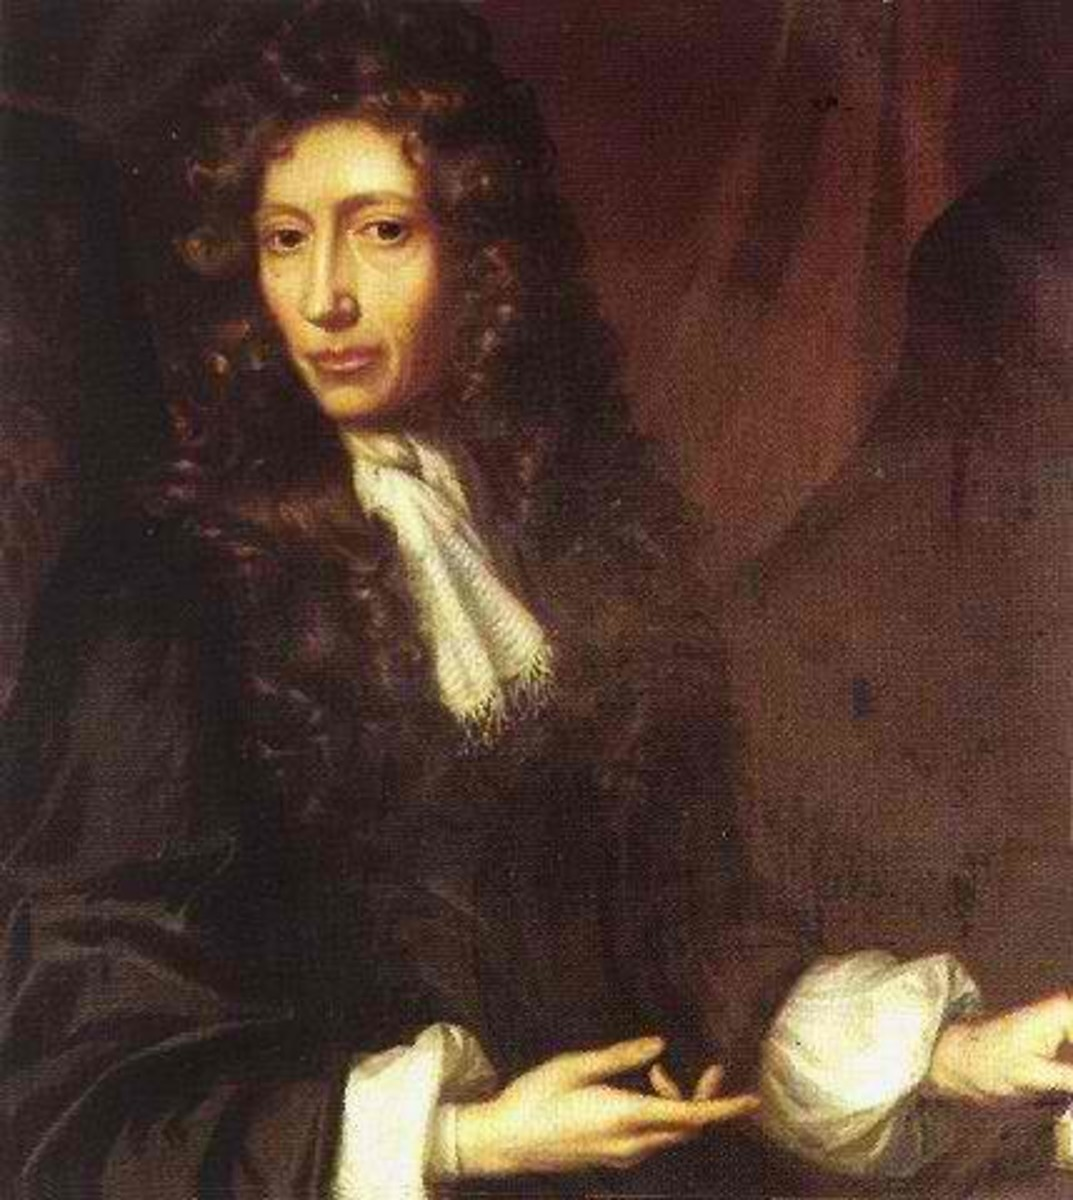 Robert Boyle: (25 January 1627 – 31 December 1691) ; First modern chemist.